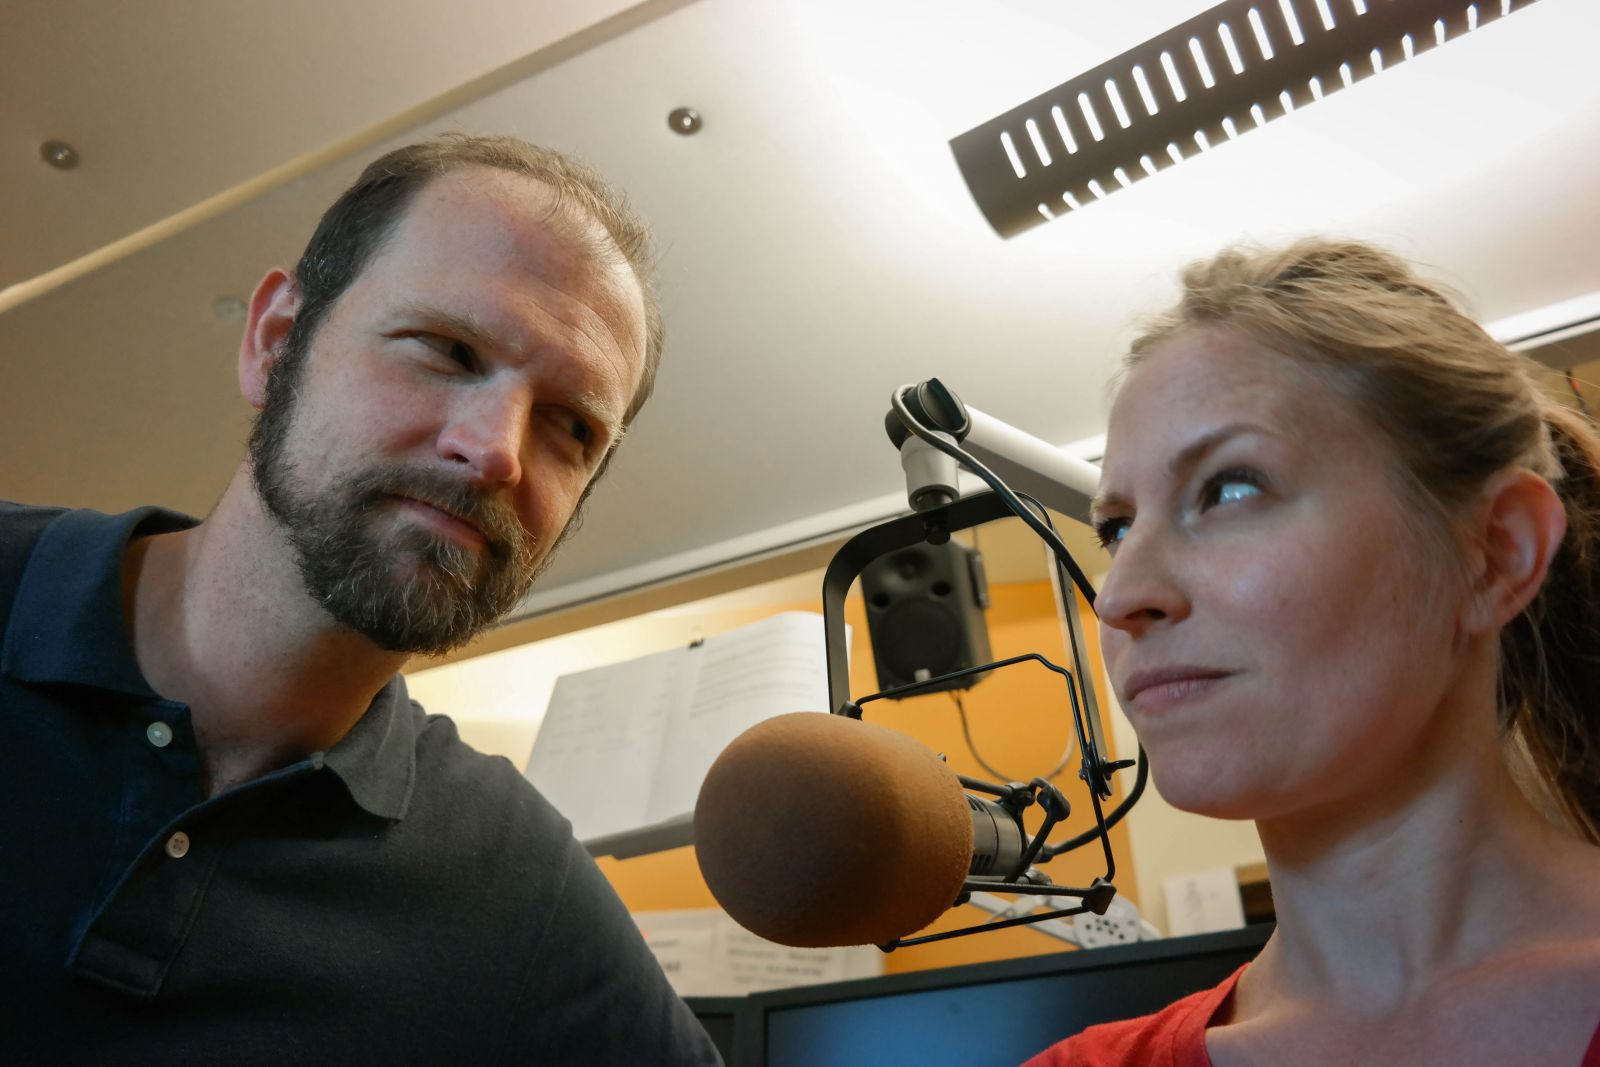 WESA radio hosts Josh Raulerson and Larkin Page-Jacobs have an ongoing feud over the temperature in the on-air studio. She likes it warmer, he likes it cooler—which is not an uncommon disagreement among men and women in shared work spaces.